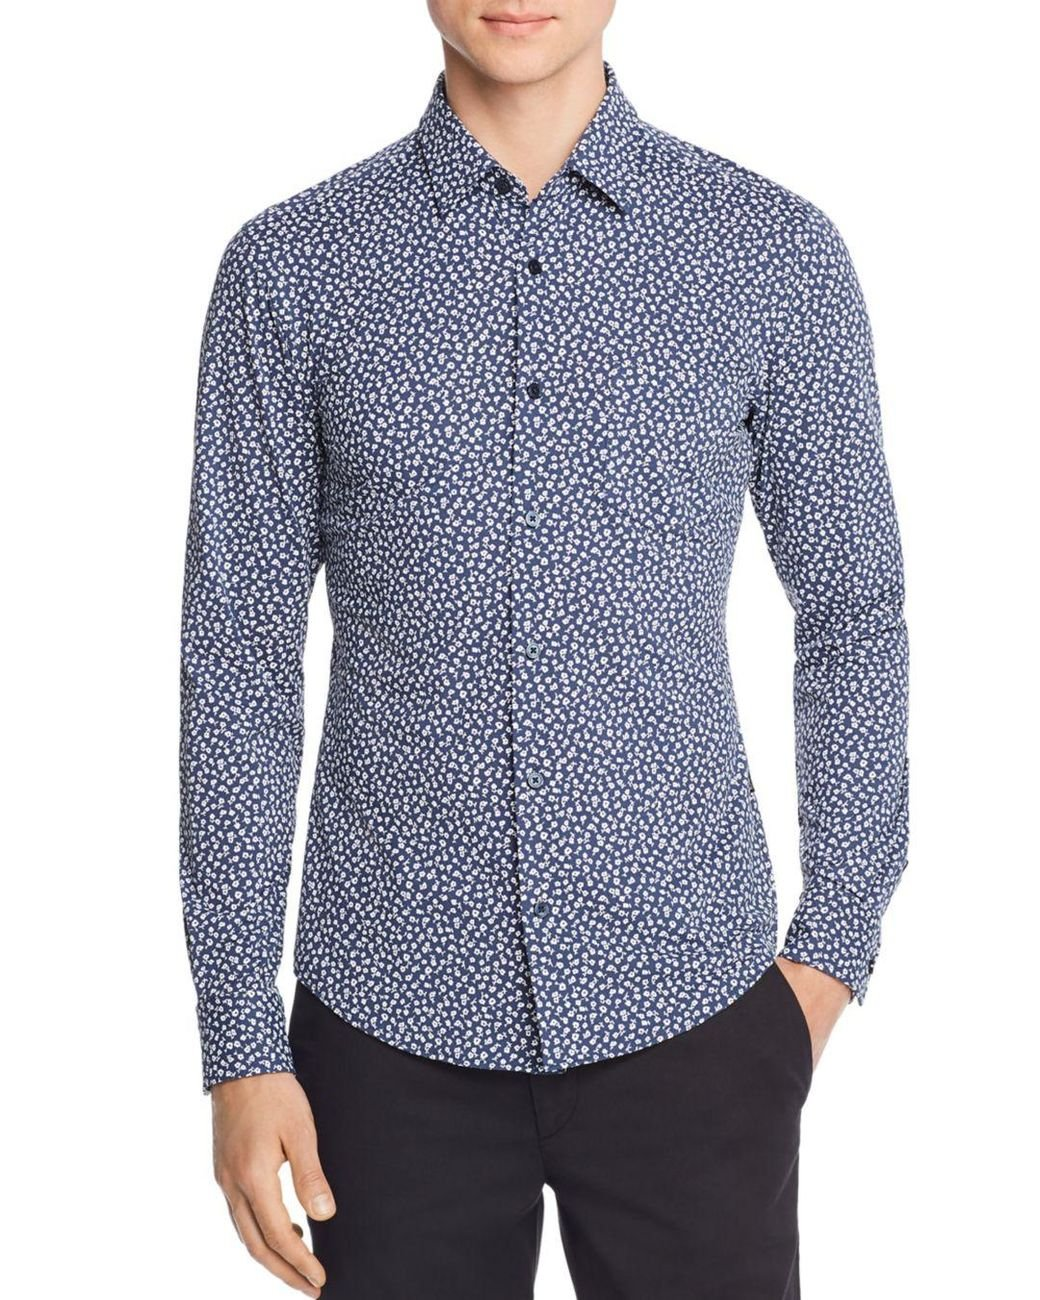 61d85a9c BOSS Ronni Floral - Print Jersey Slim Fit Shirt in Blue for Men - Lyst